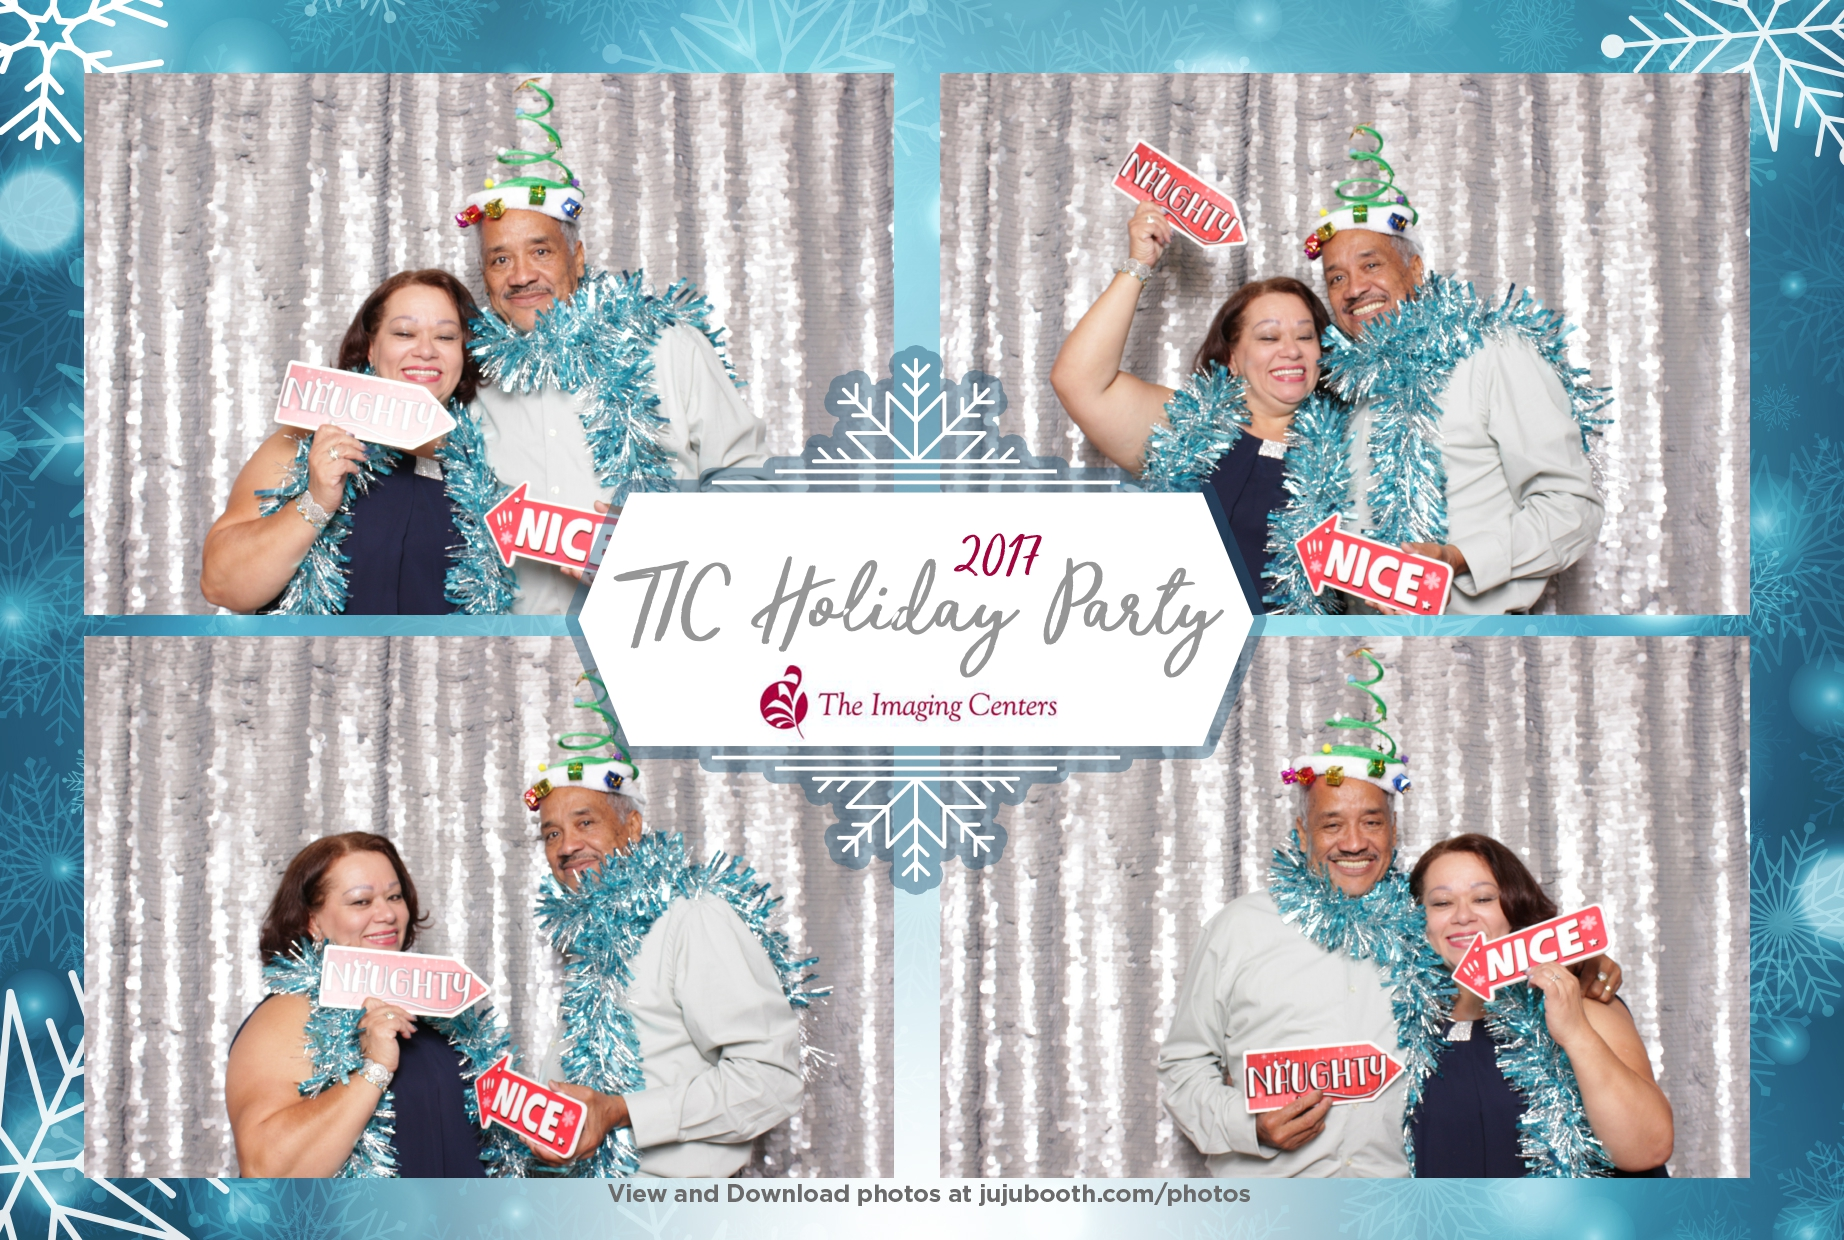 West Palm Beach Lake Pavilion Event Photo Booth